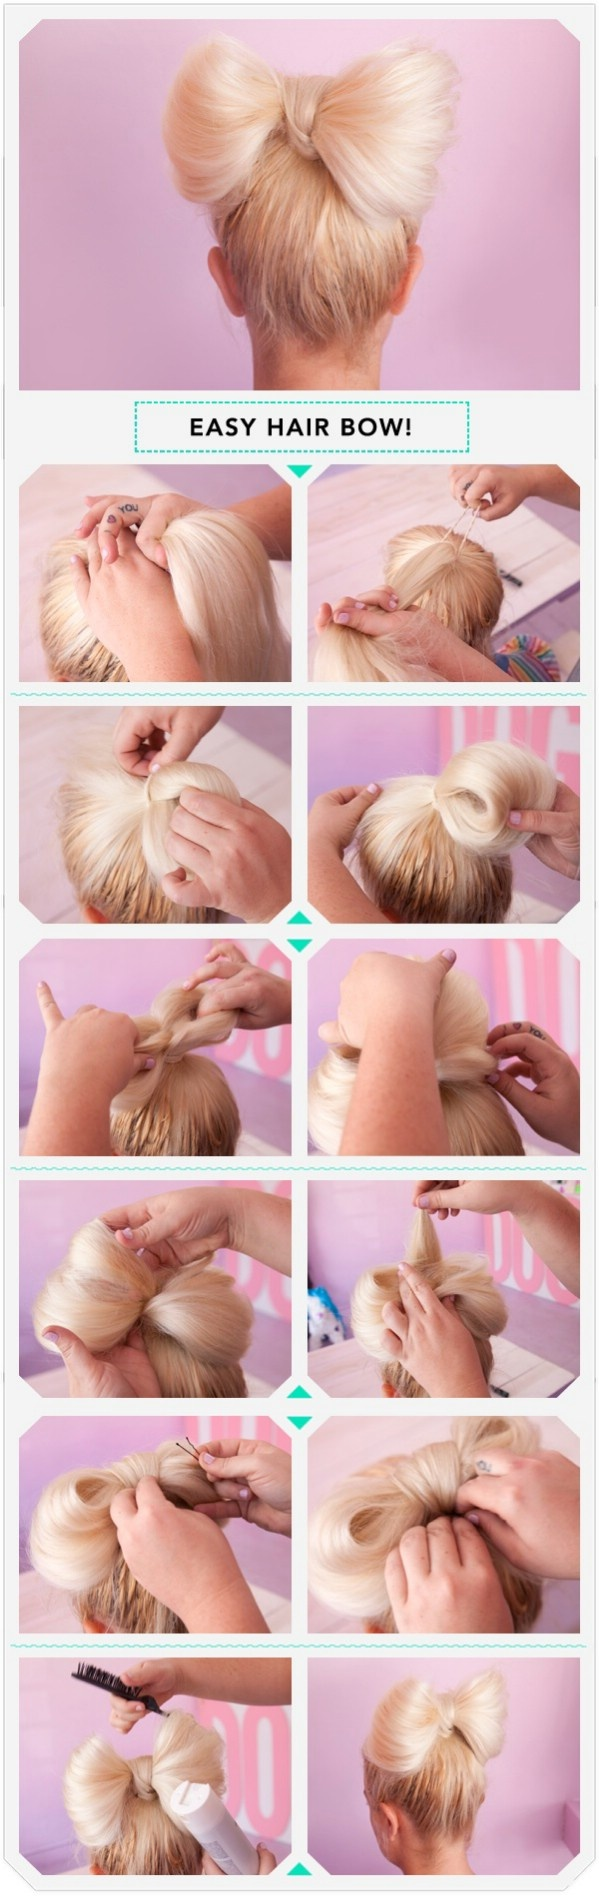 "That Adorable ""Bow"" Hairstyle You've Seen Your Fave Celebs Wearing. via http://www.womenio.com/1547/that-adorable-bow-hairstyle-youve-seen-your-fave-celebs-wearing Upcoming daughter experiment wish me luck:)"